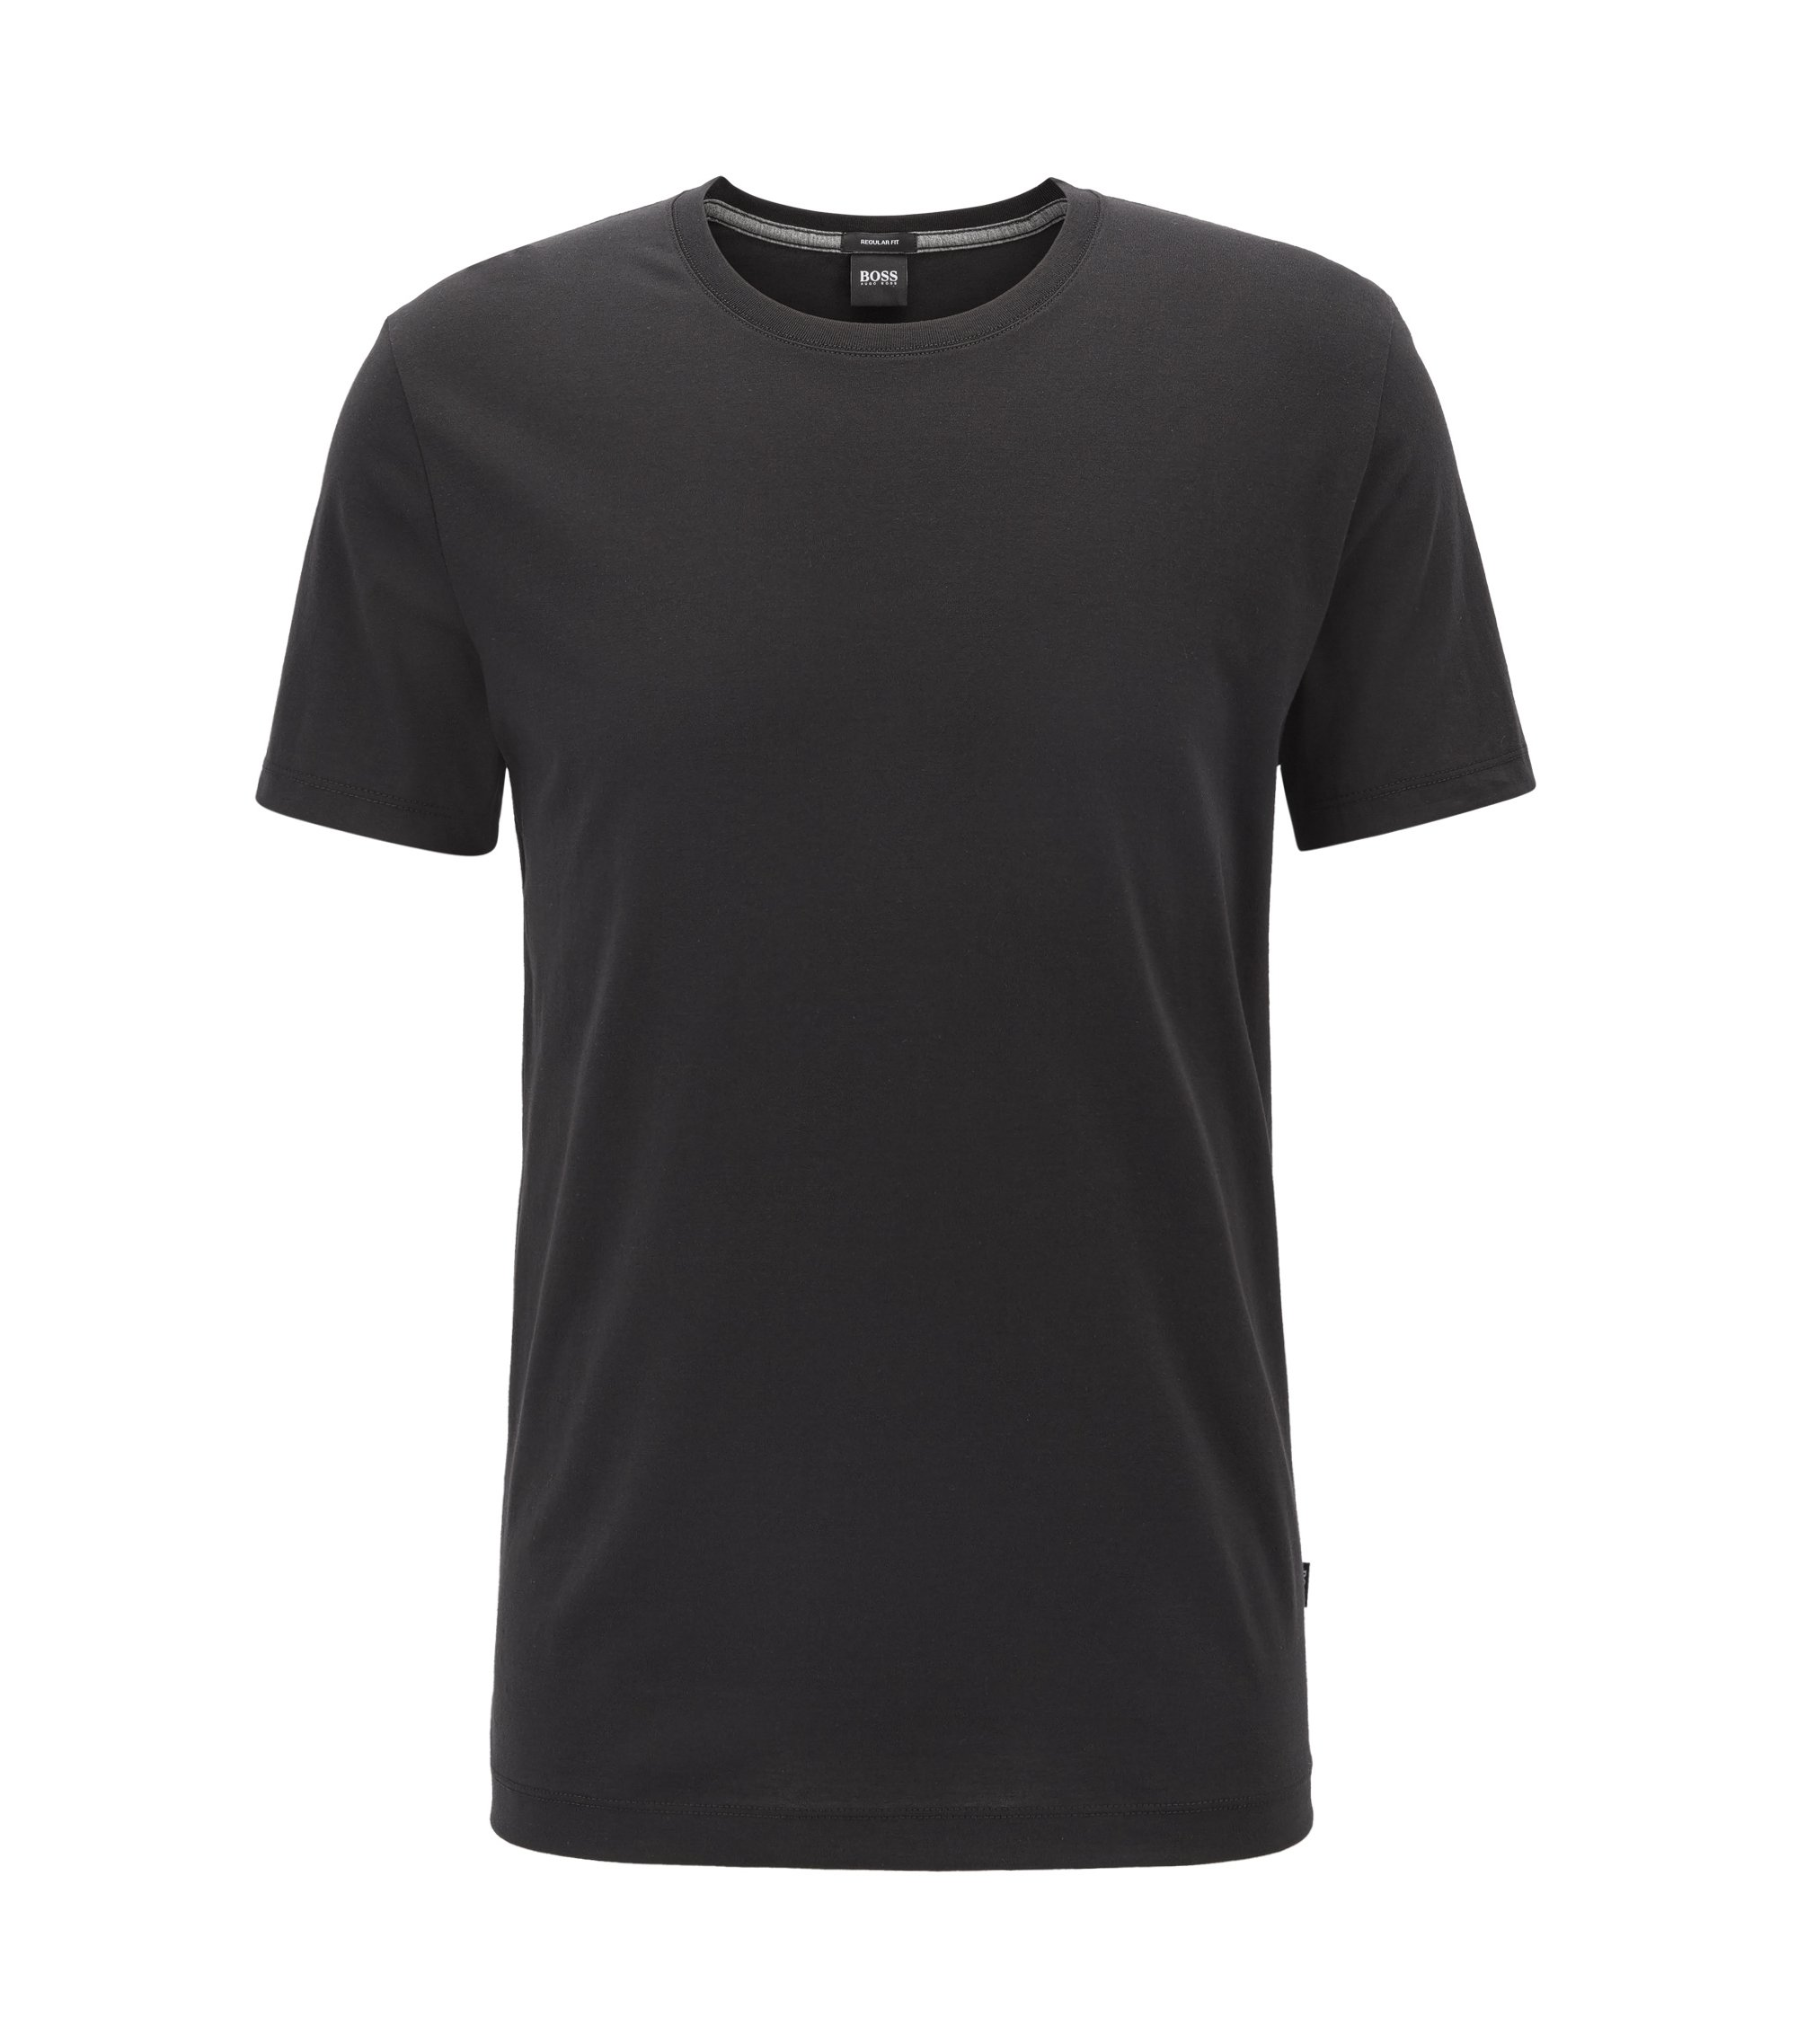 Regular-fit T-shirt in soft cotton, Black